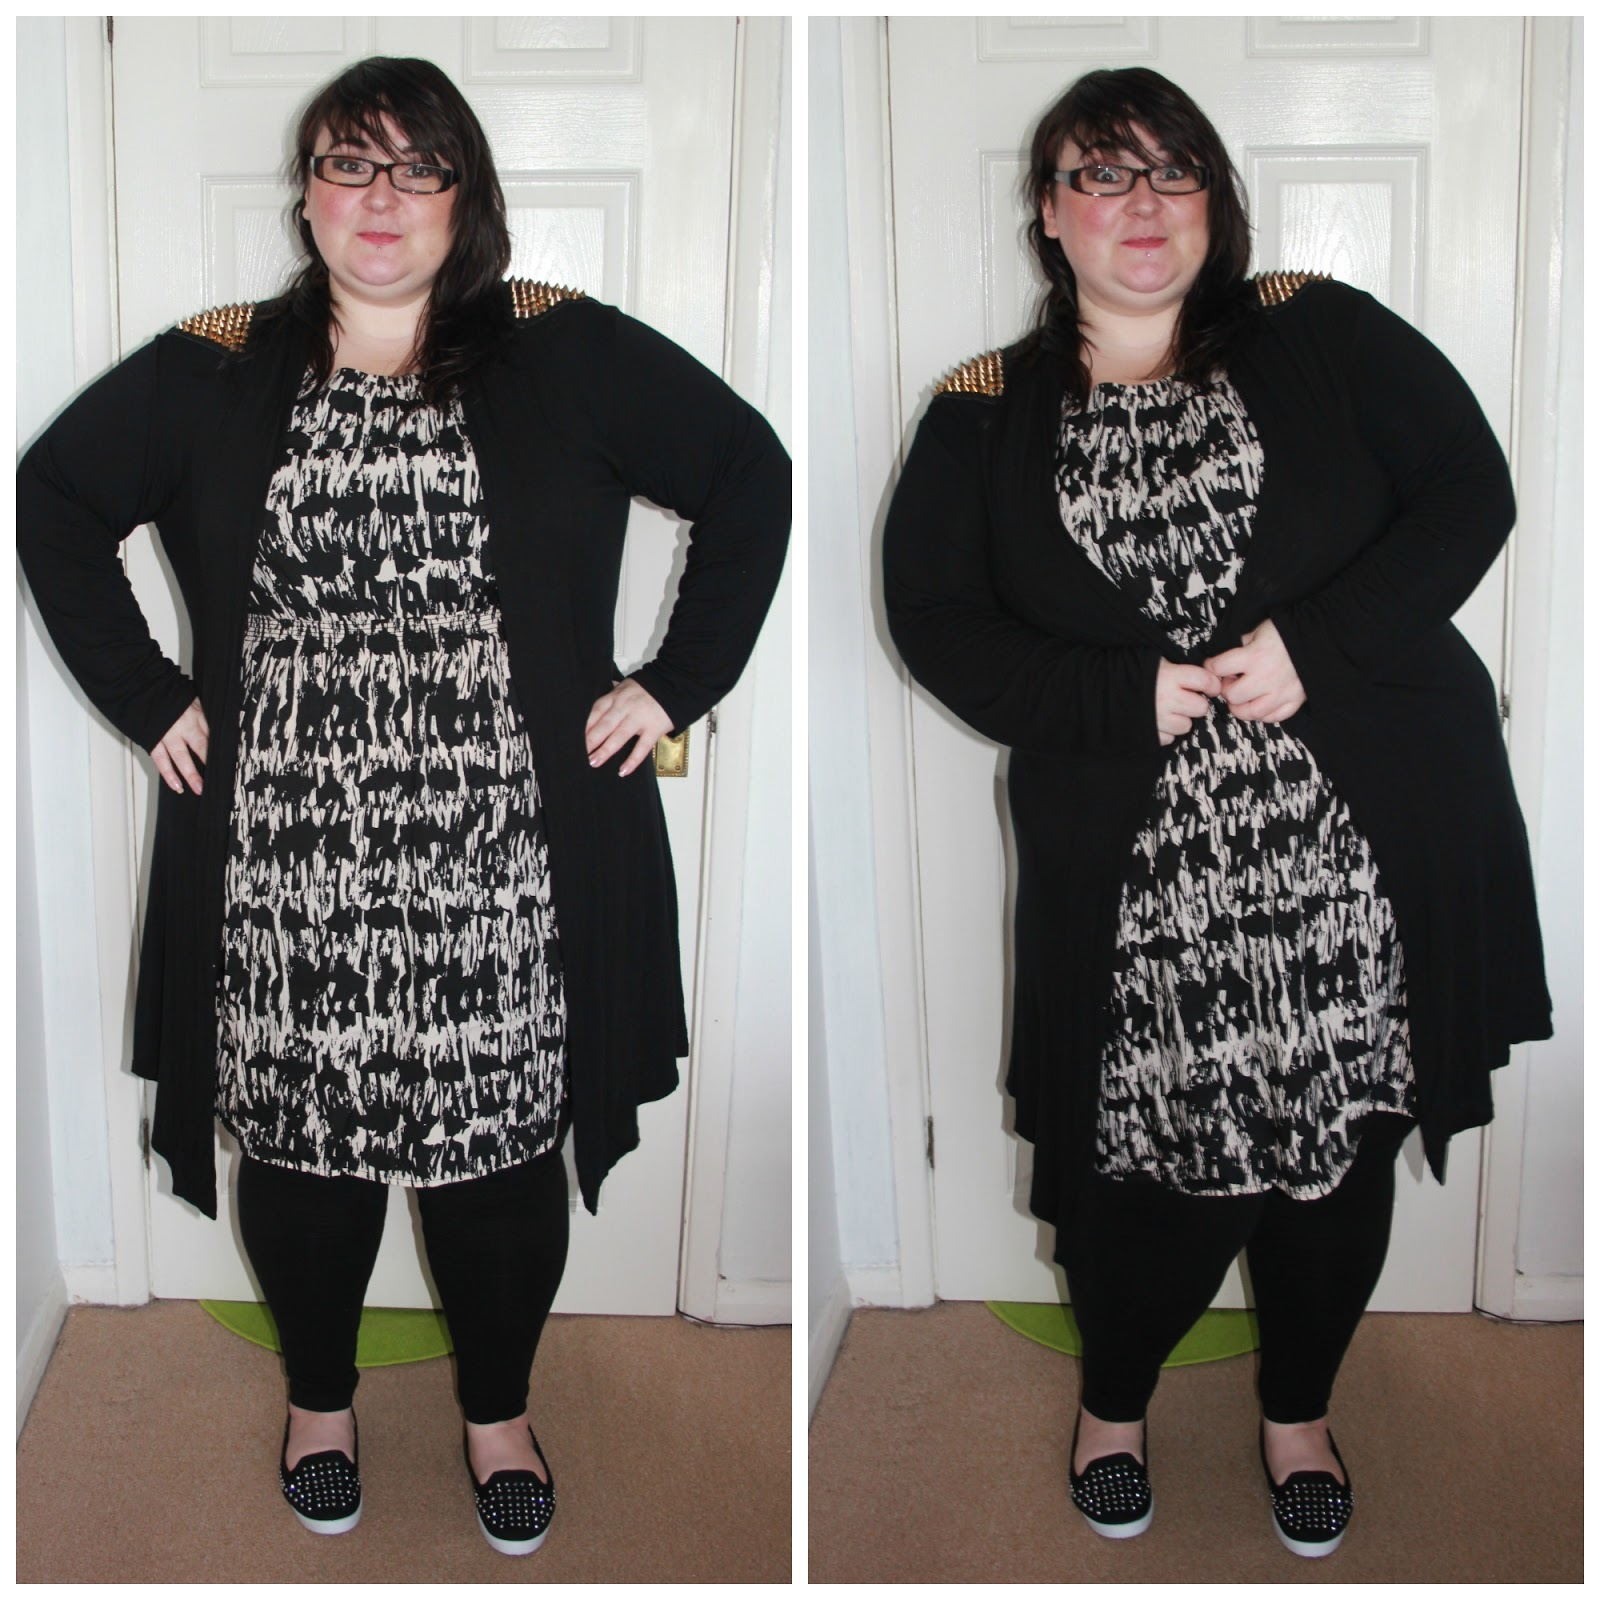 be431f2a568 The dress is a lightweight polyester material with lining to the top half  only. It weighs next to nothing and would be great to pack for a weekend  away as ...